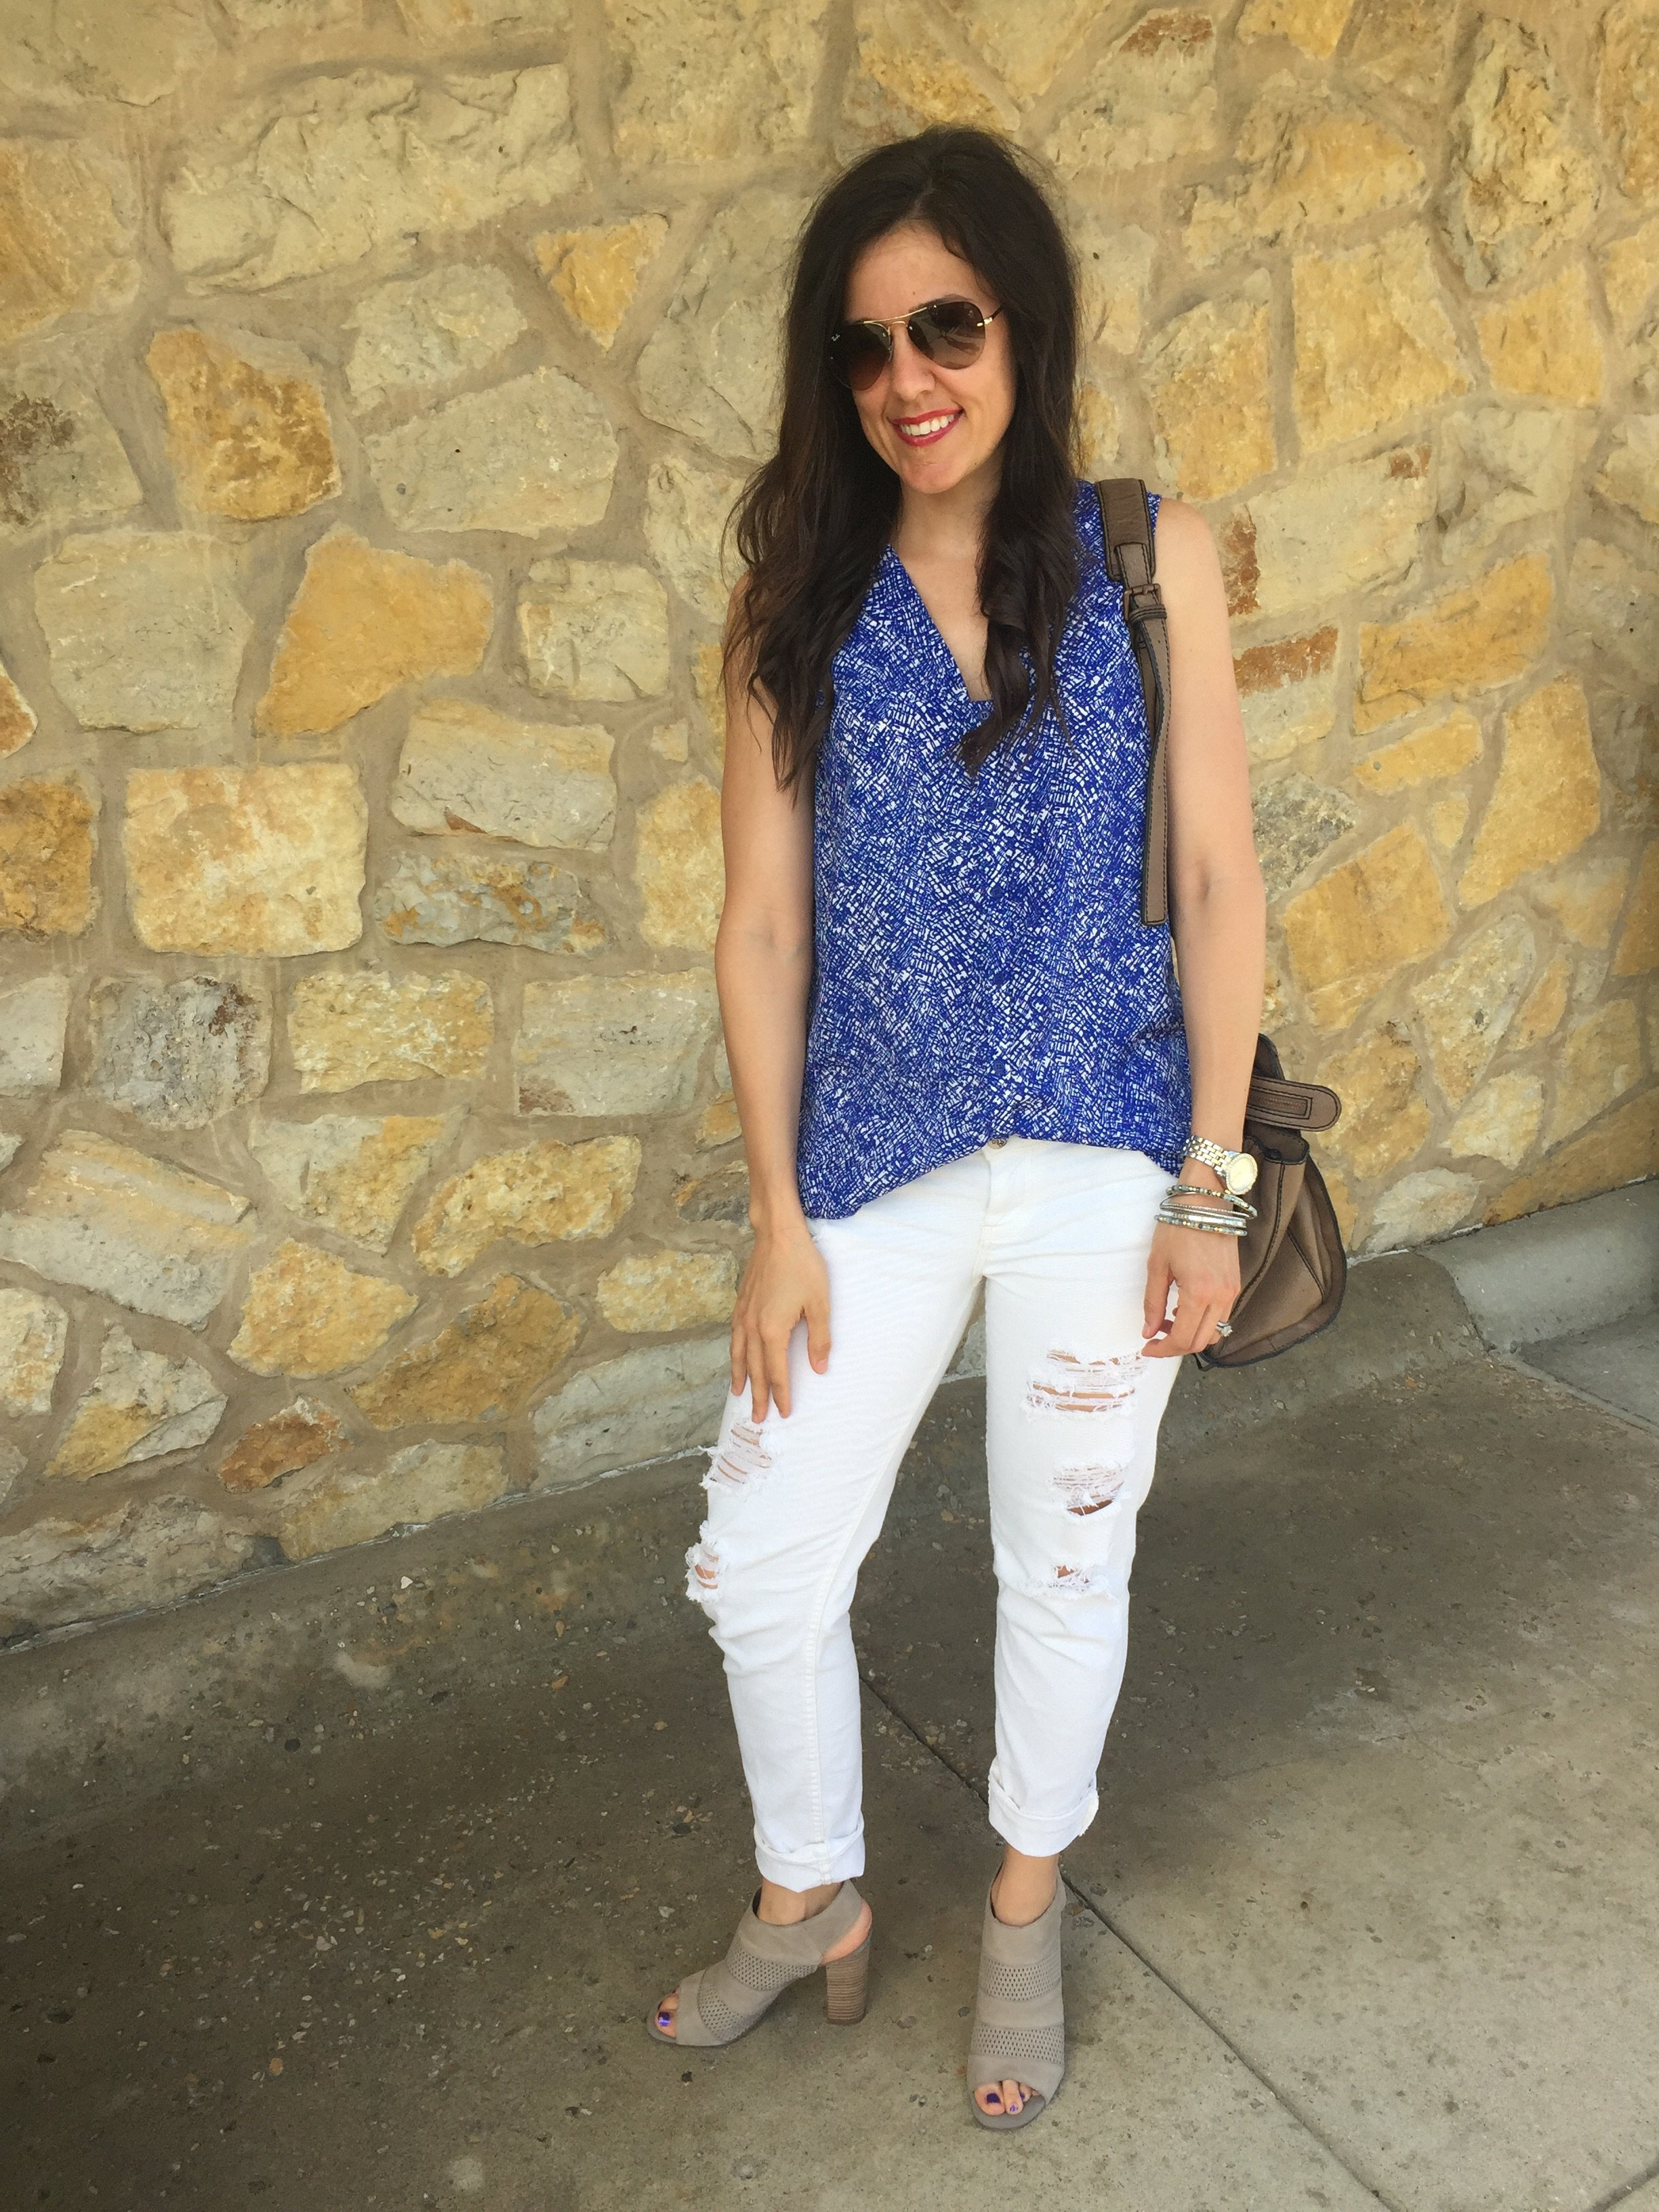 How to style ripped jeans | White jeans outfit | How to style white jeans | Spring outfit idea